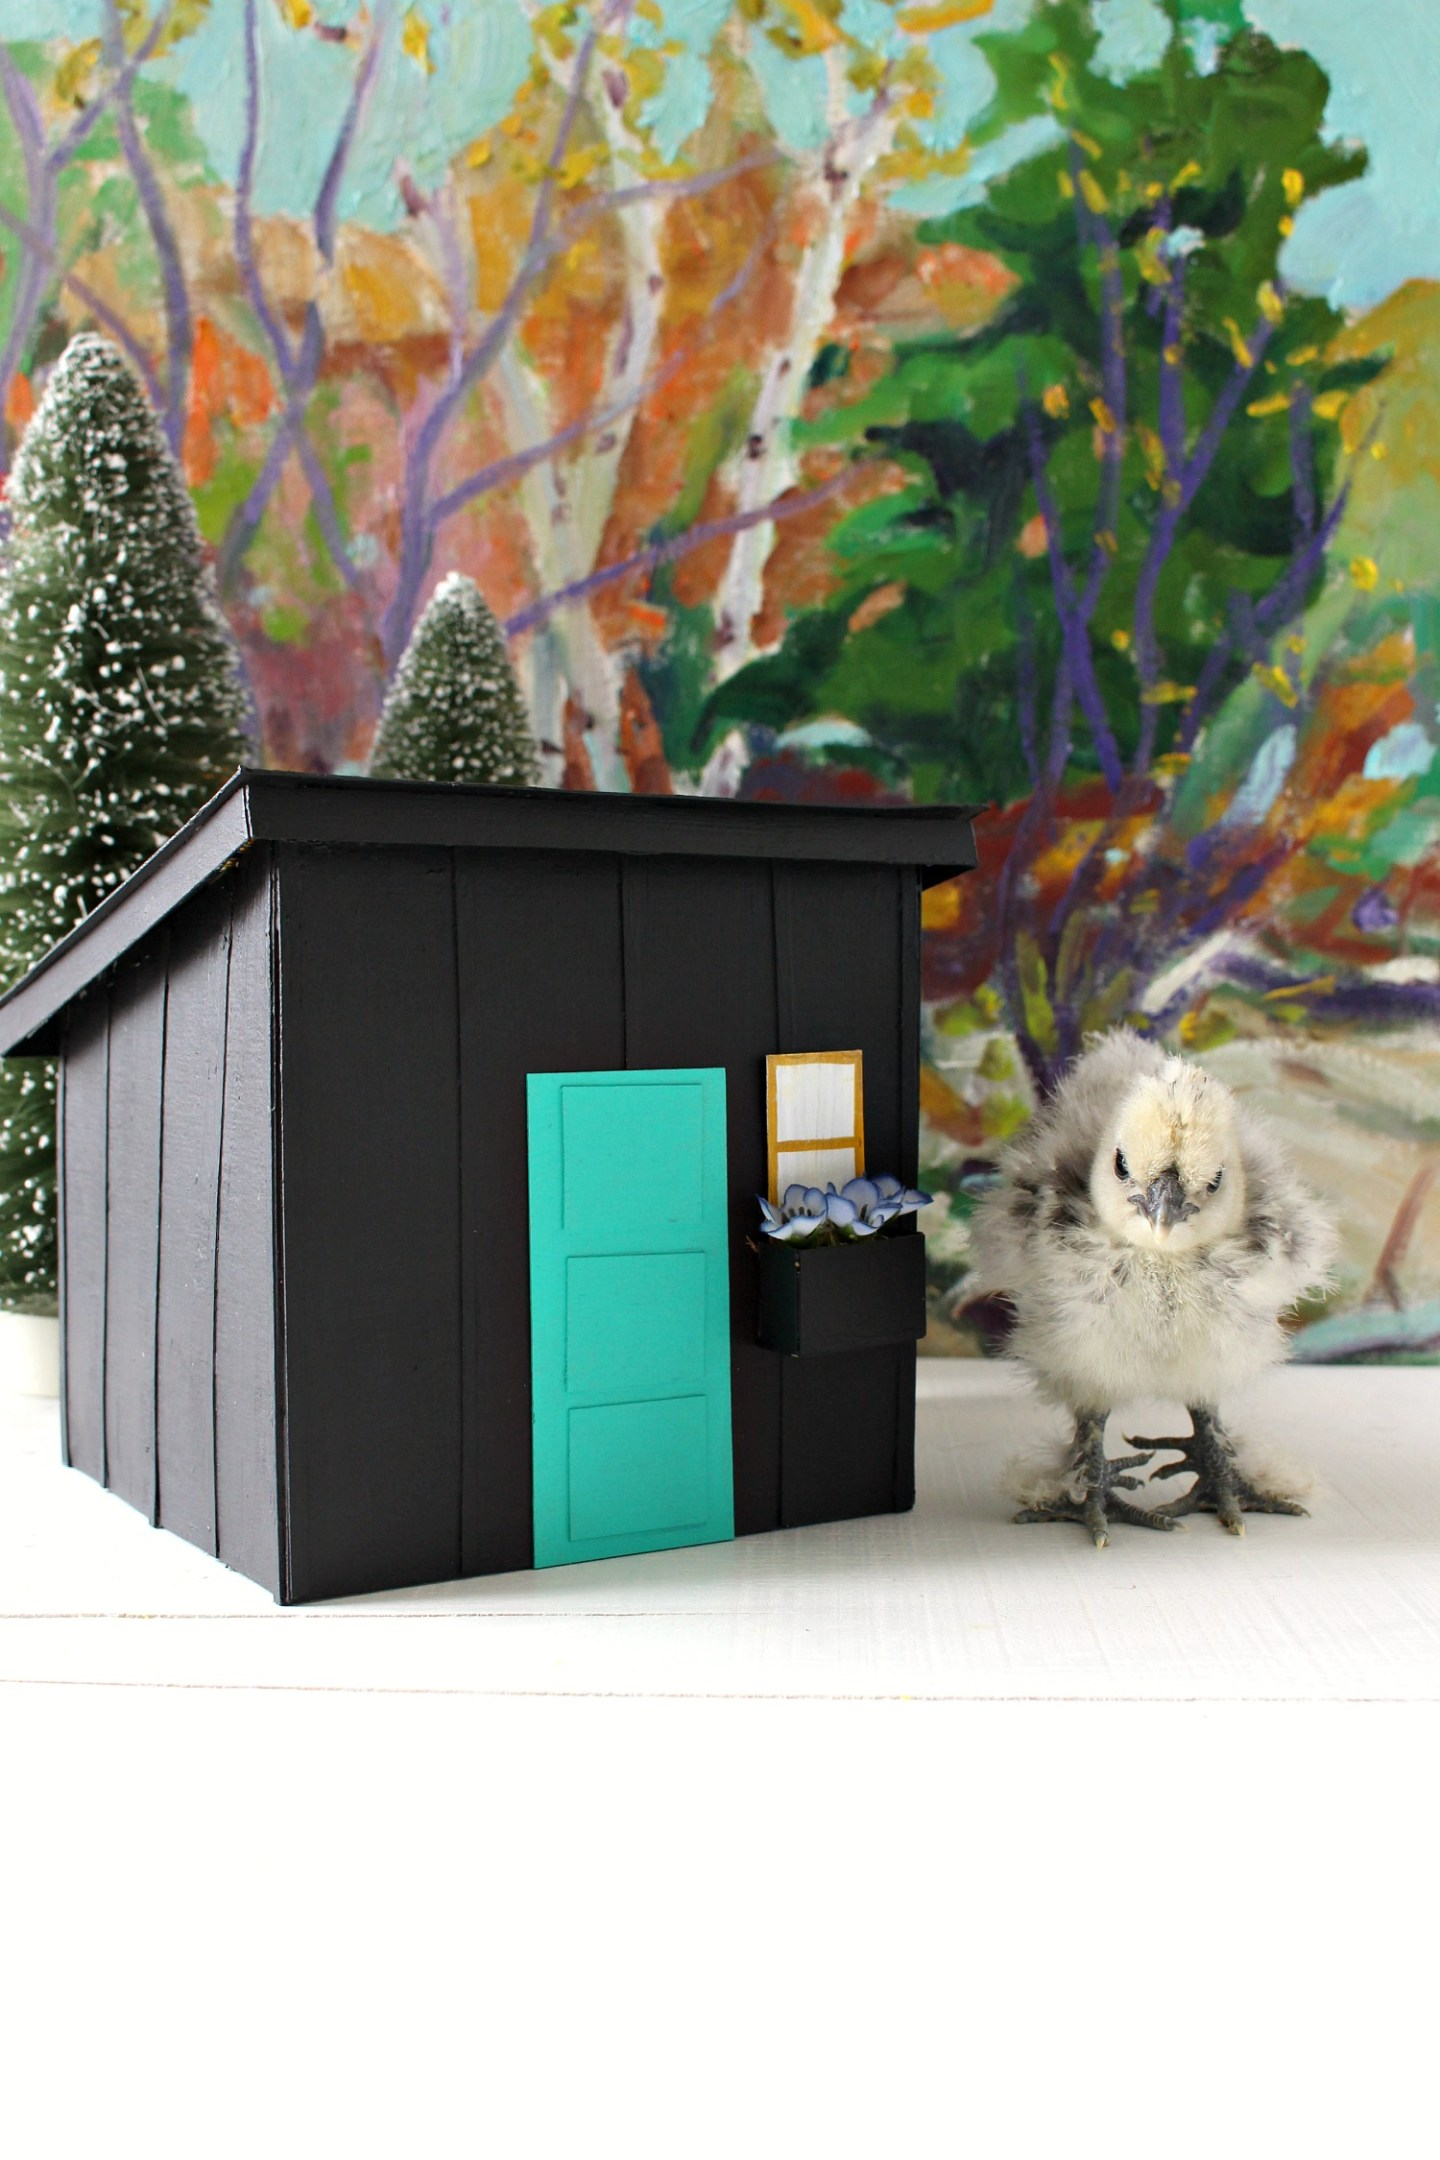 Chick with a Mini Replica of a Modern DIY Chicken Coop